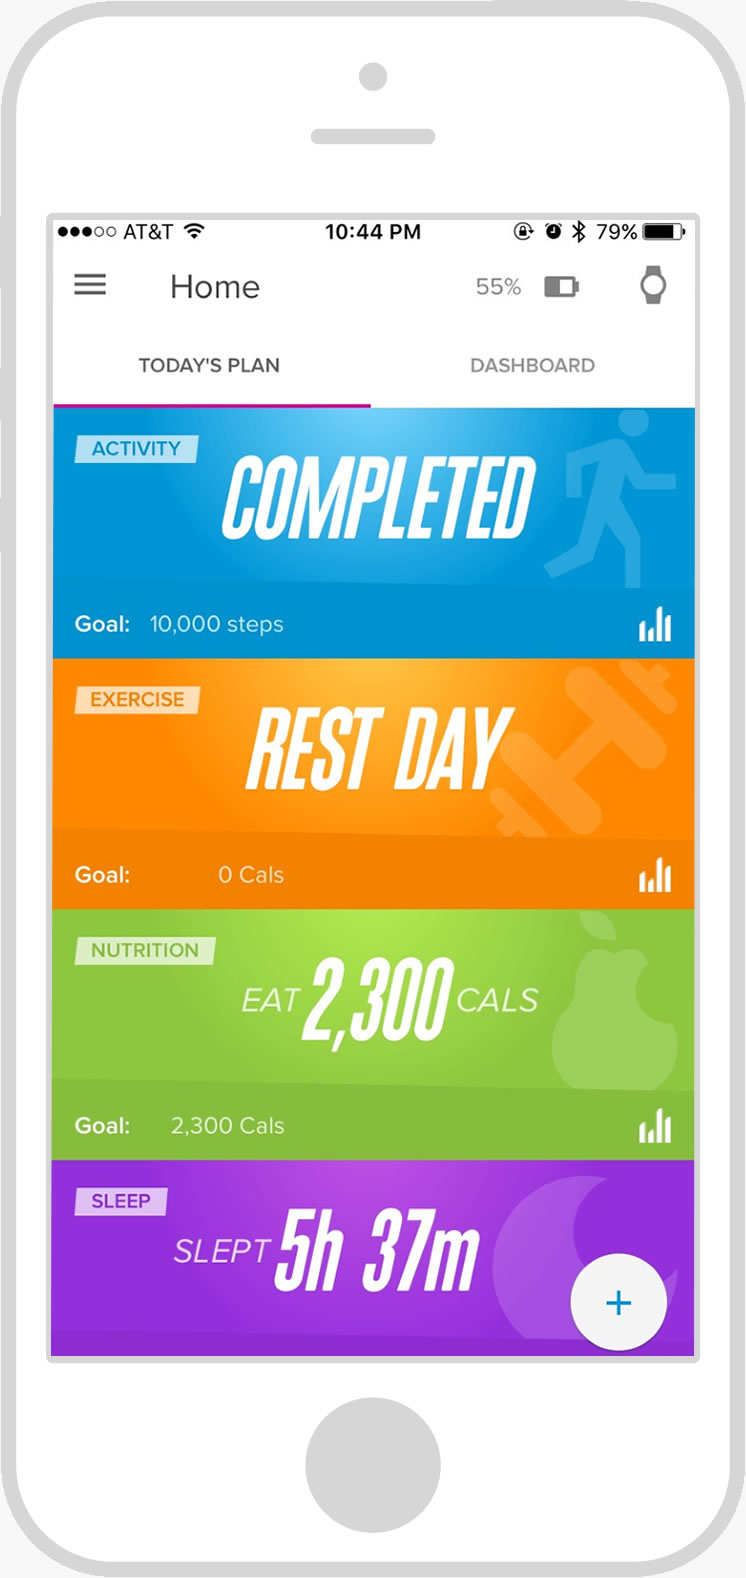 Screen shot of iFit Coach app's Today's Plan - a summary of what you have to do and have completed so far for the day